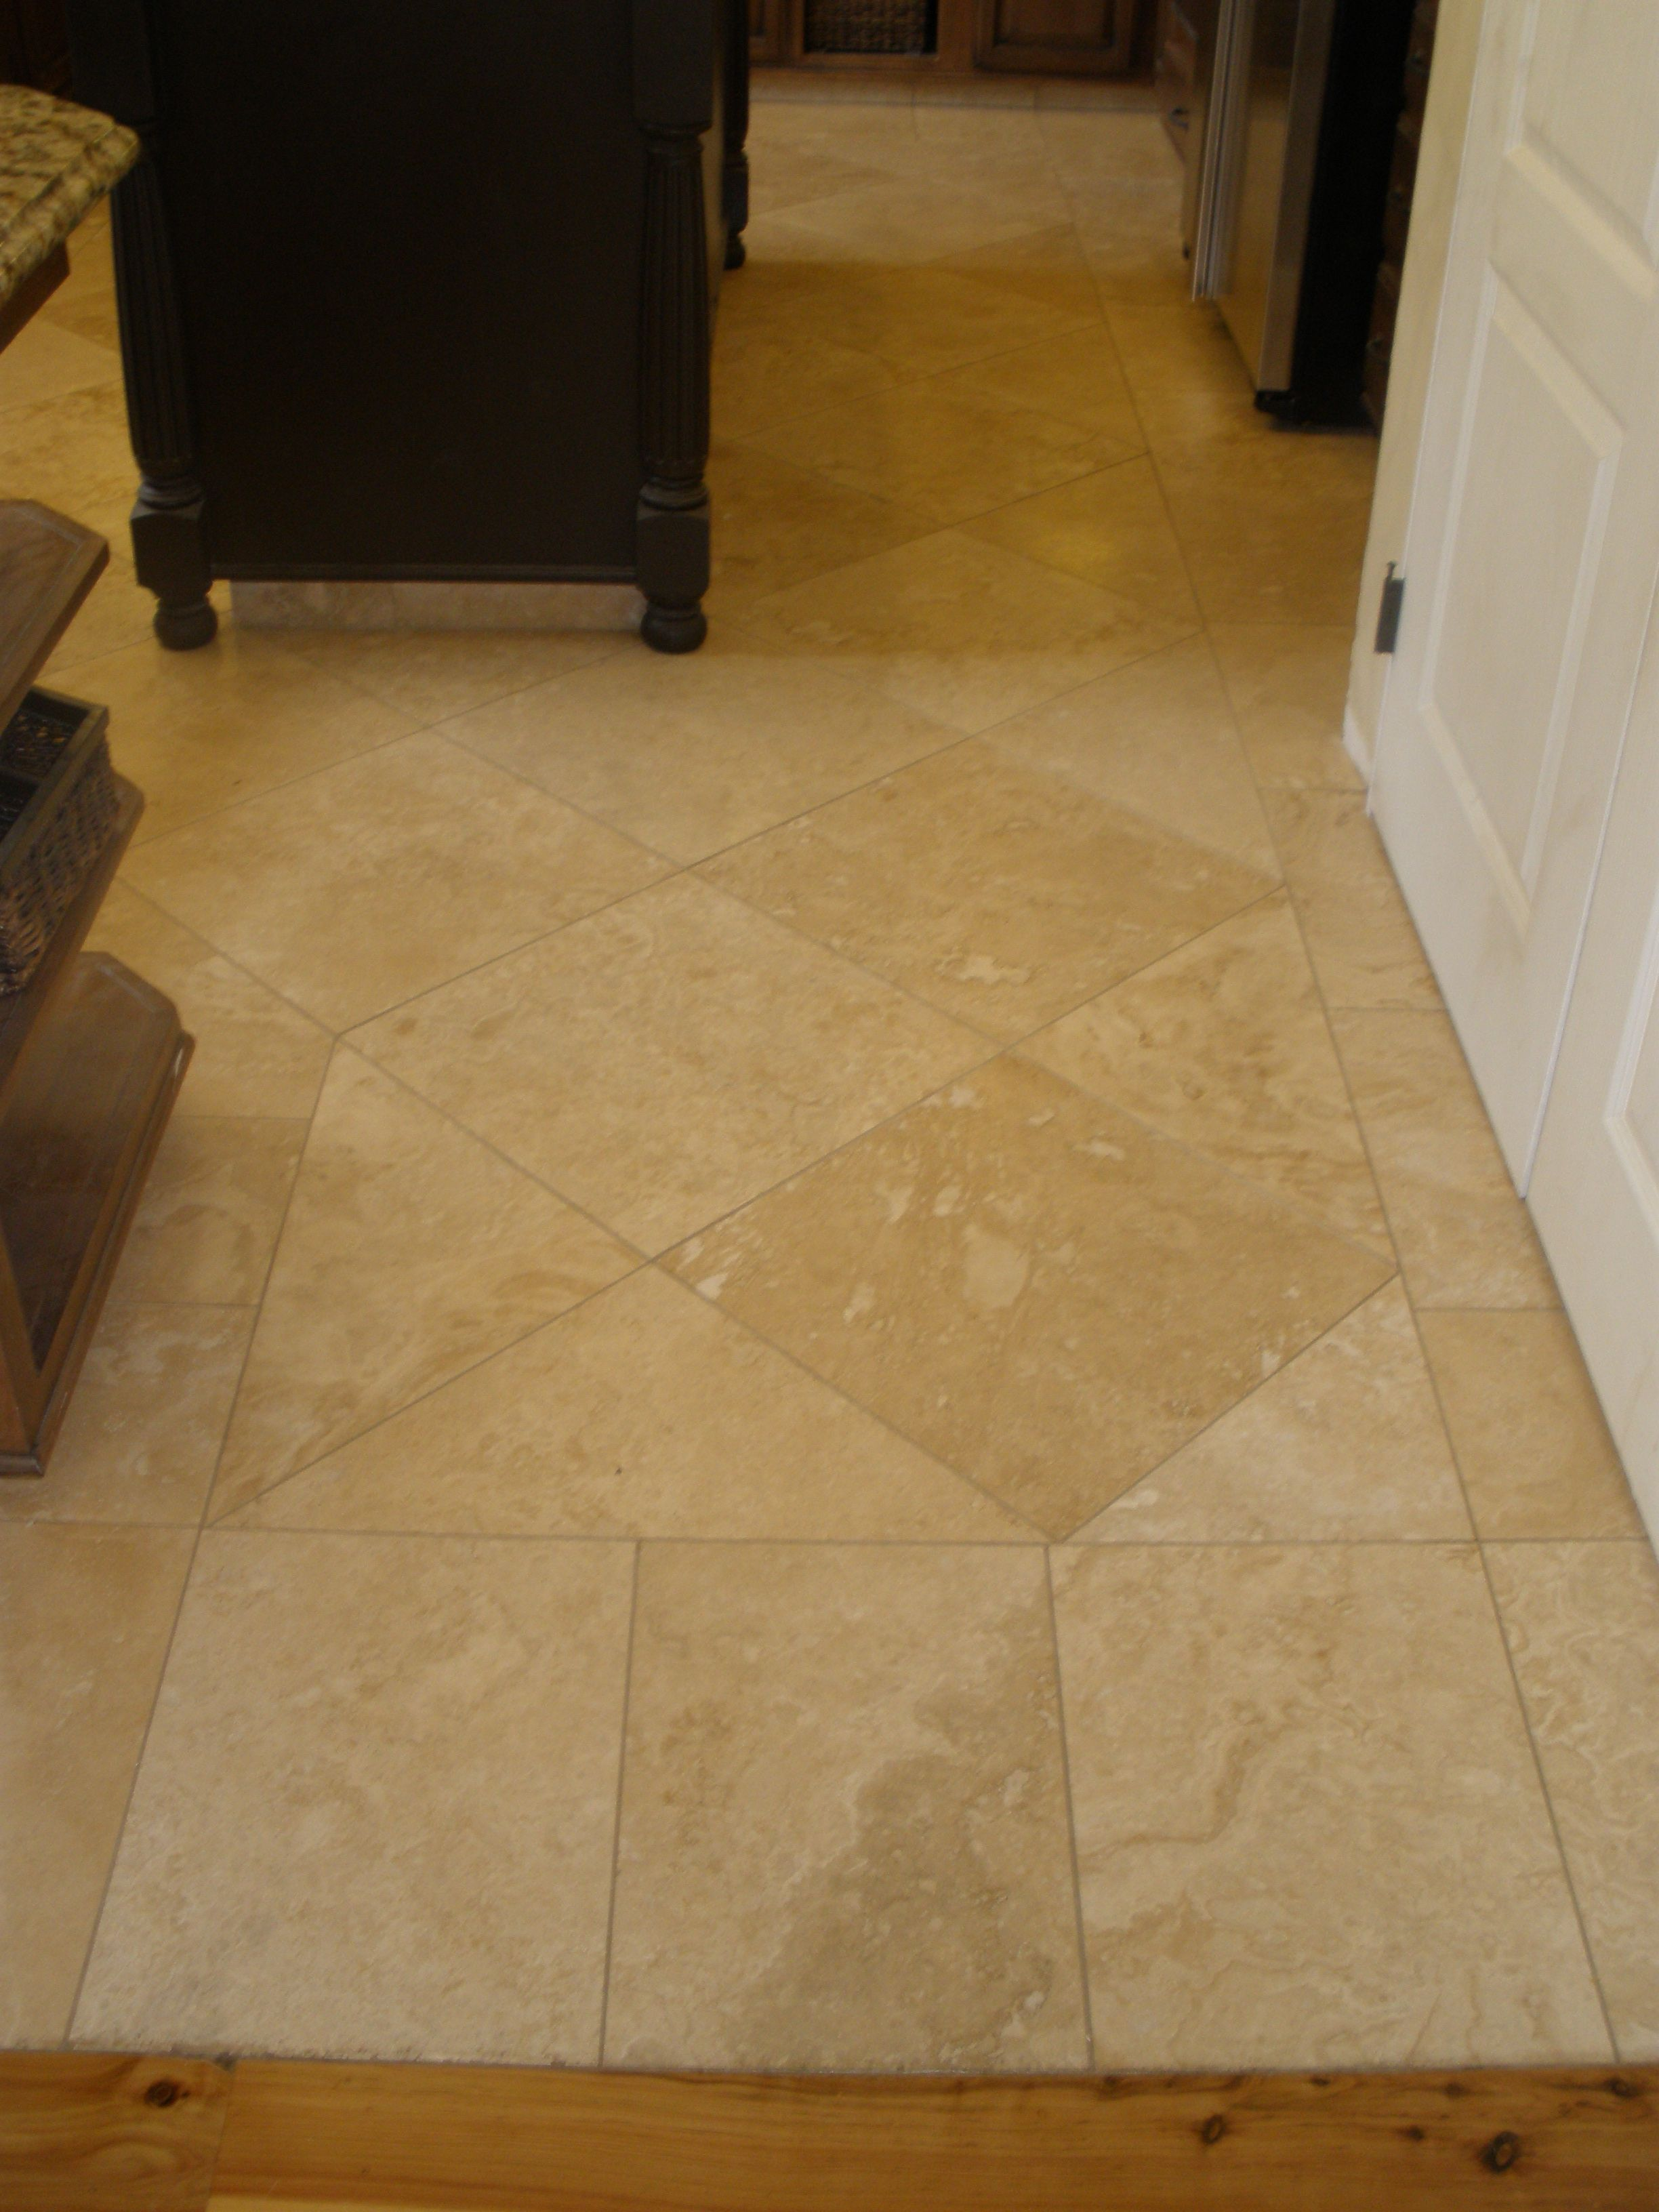 18x18 travertine set with a 116 grout joint httpwww 18x18 travertine set with a 116 grout joint http tile ideasgrouttravertinemaster dailygadgetfo Gallery